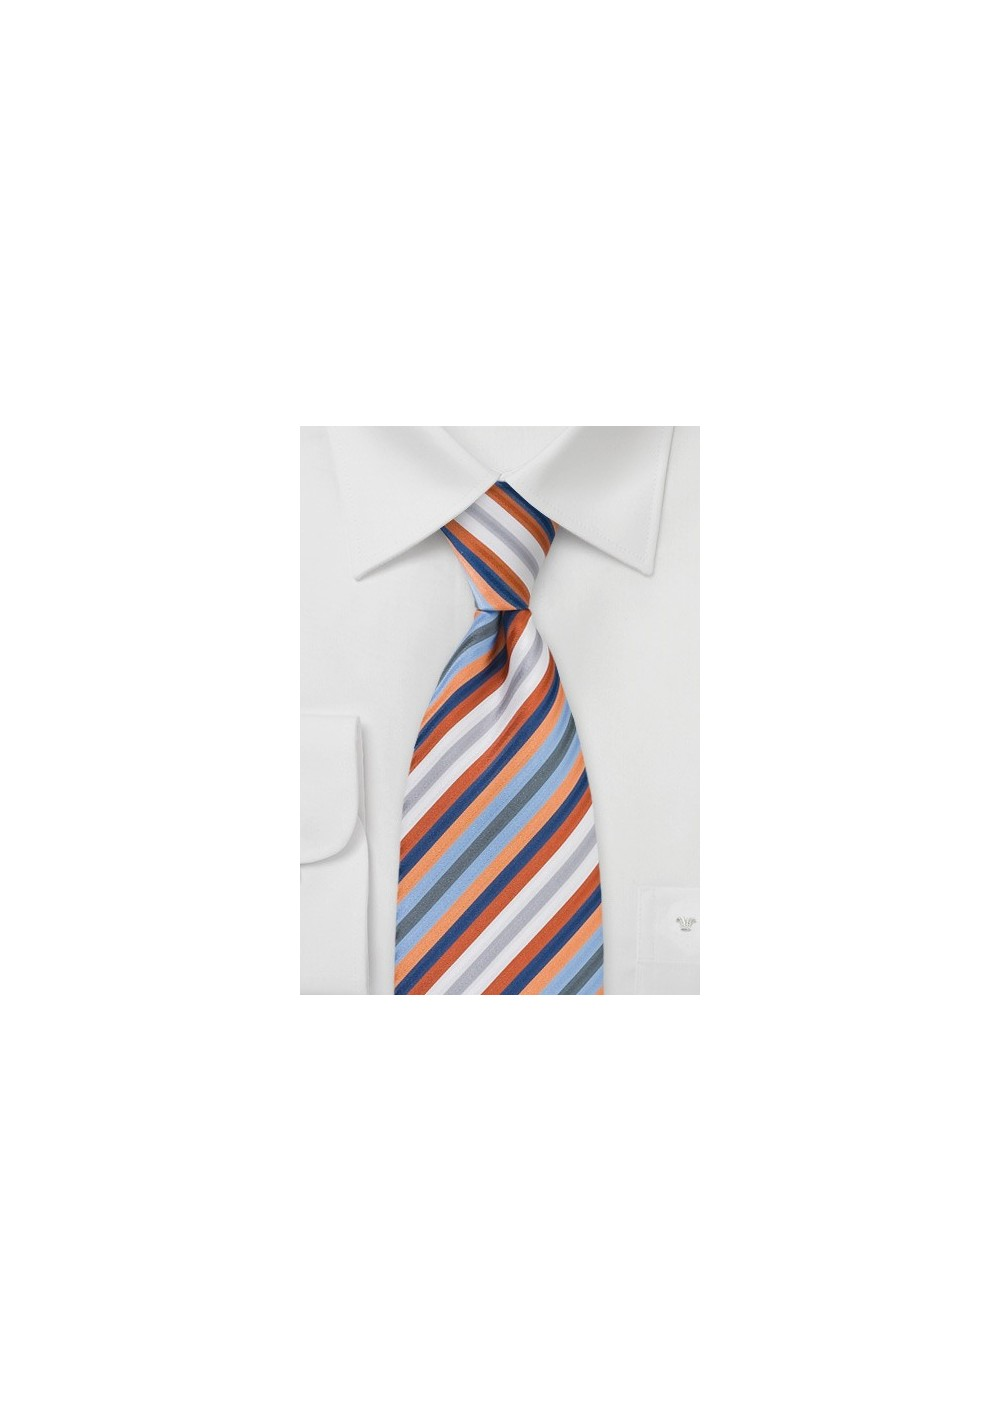 Striped Tie in Orange, Blue, White